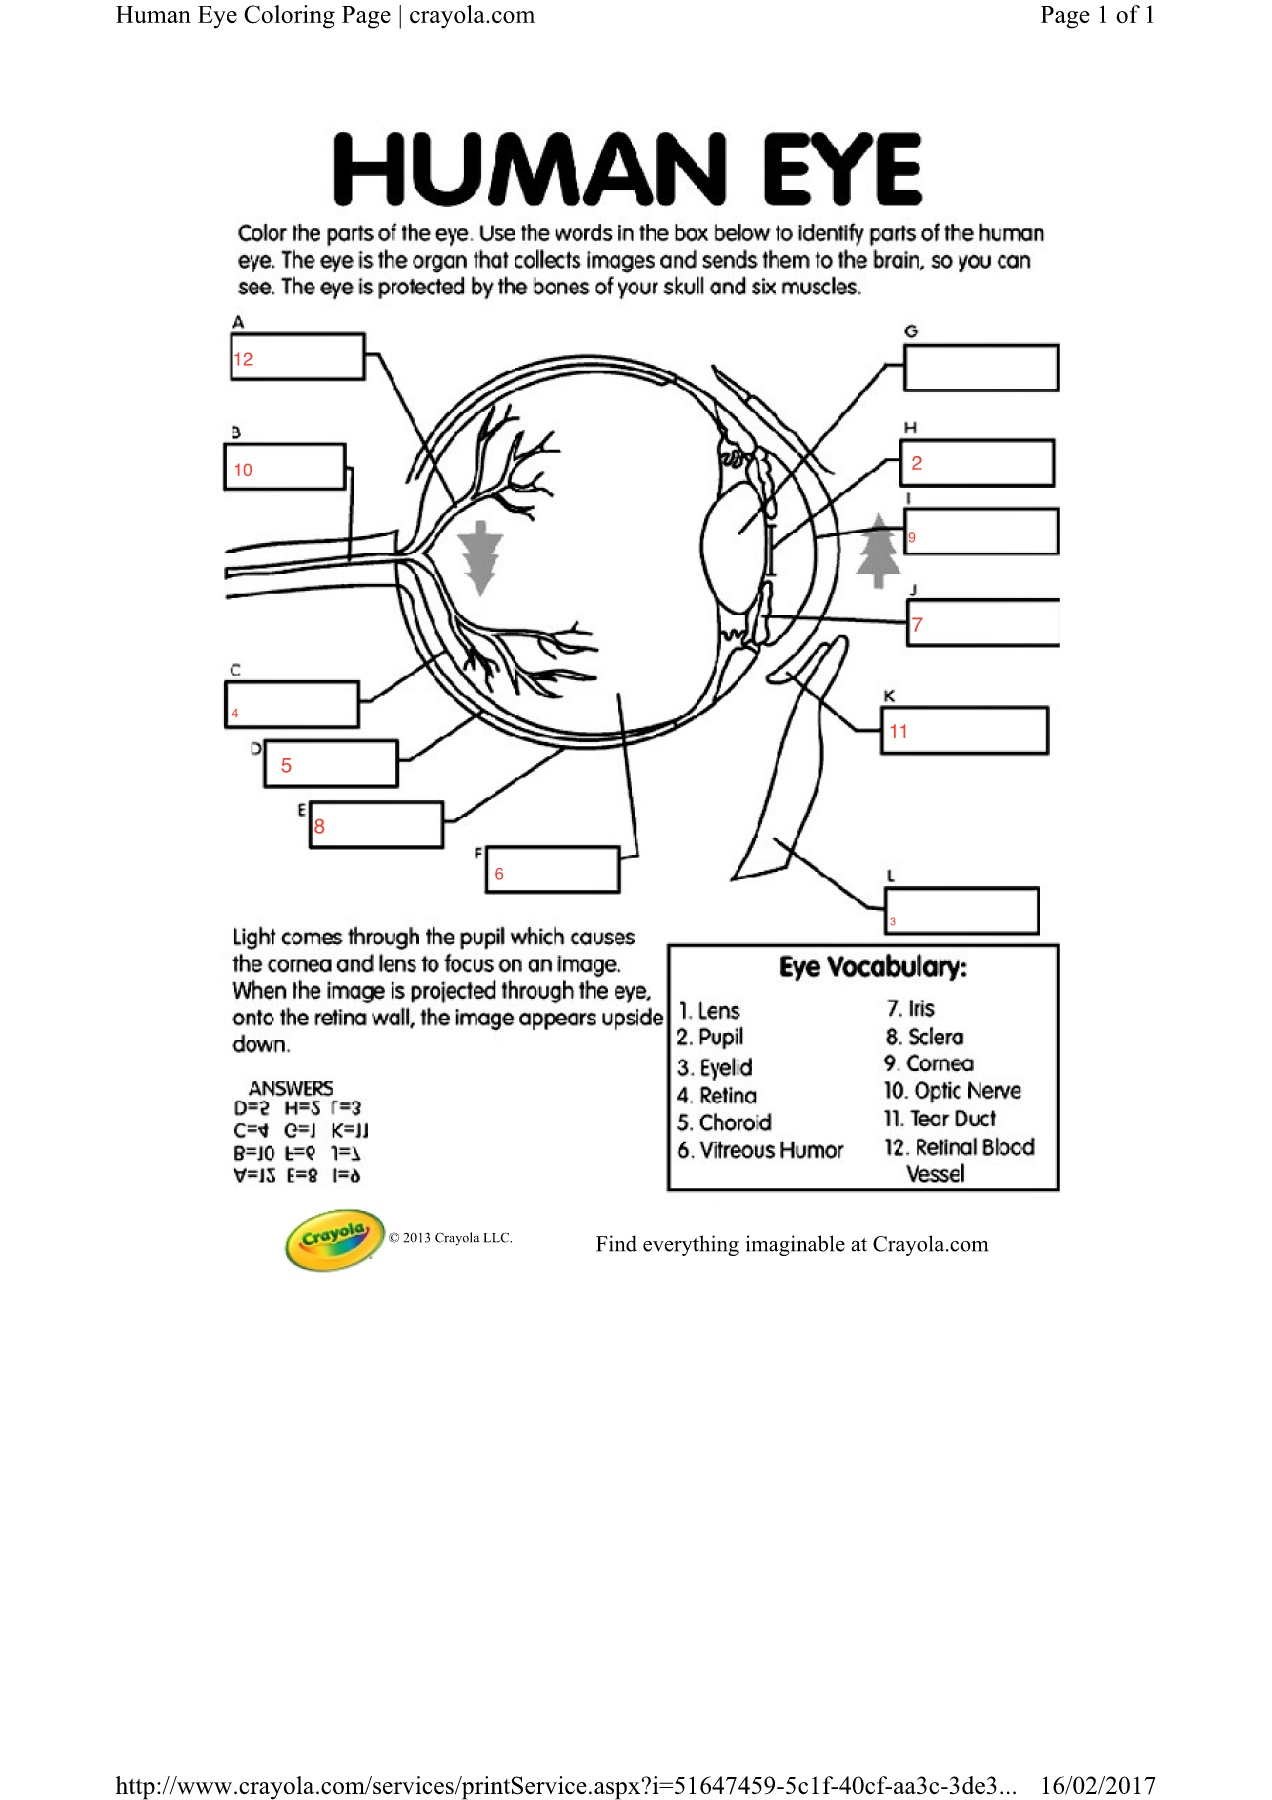 Eagle Eye Wiring Diagram. how to connect wire to angel